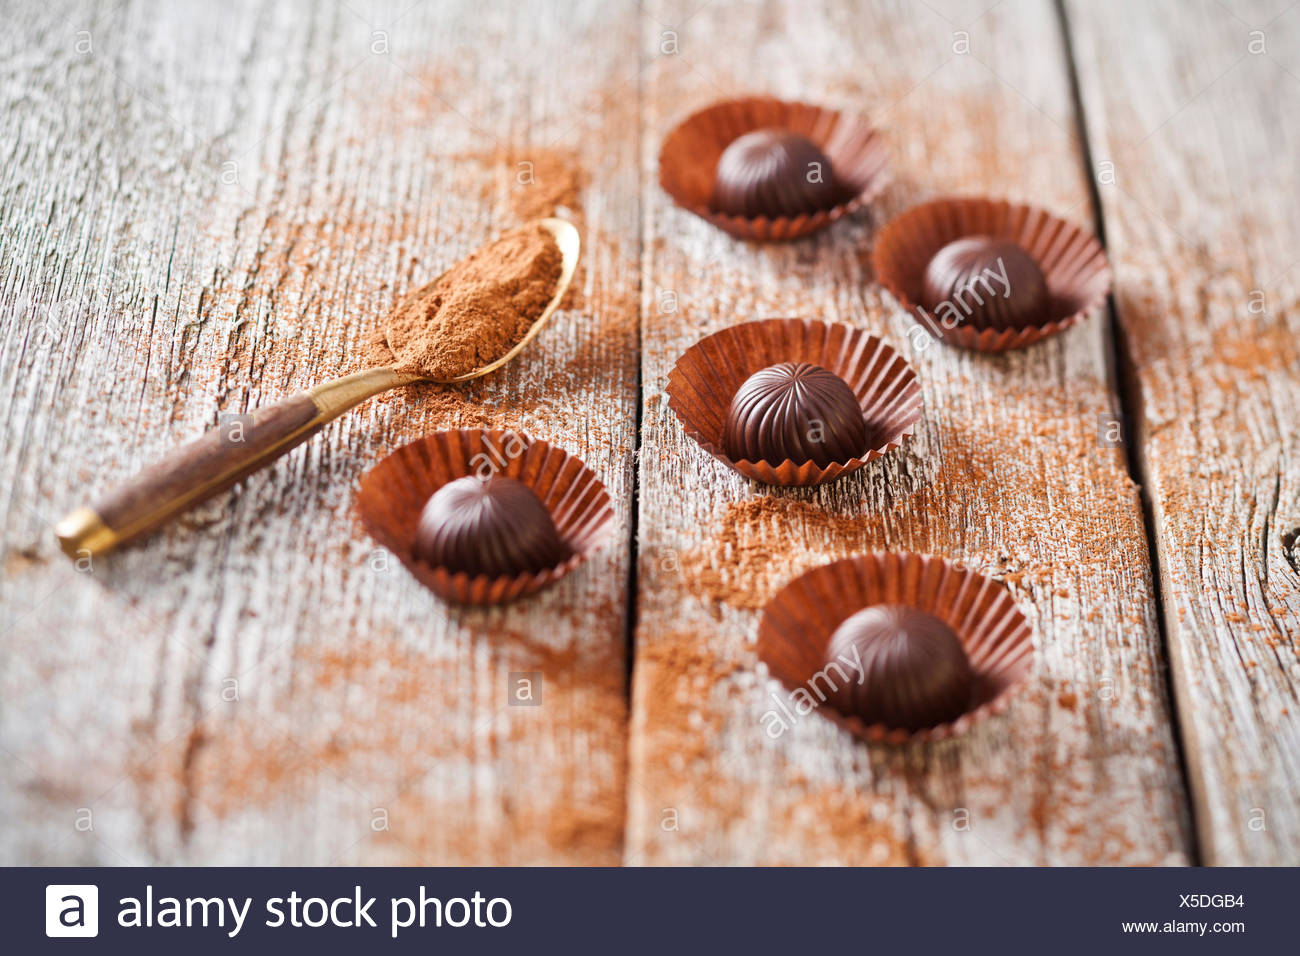 Chocolate candies on wooden background - Stock Image